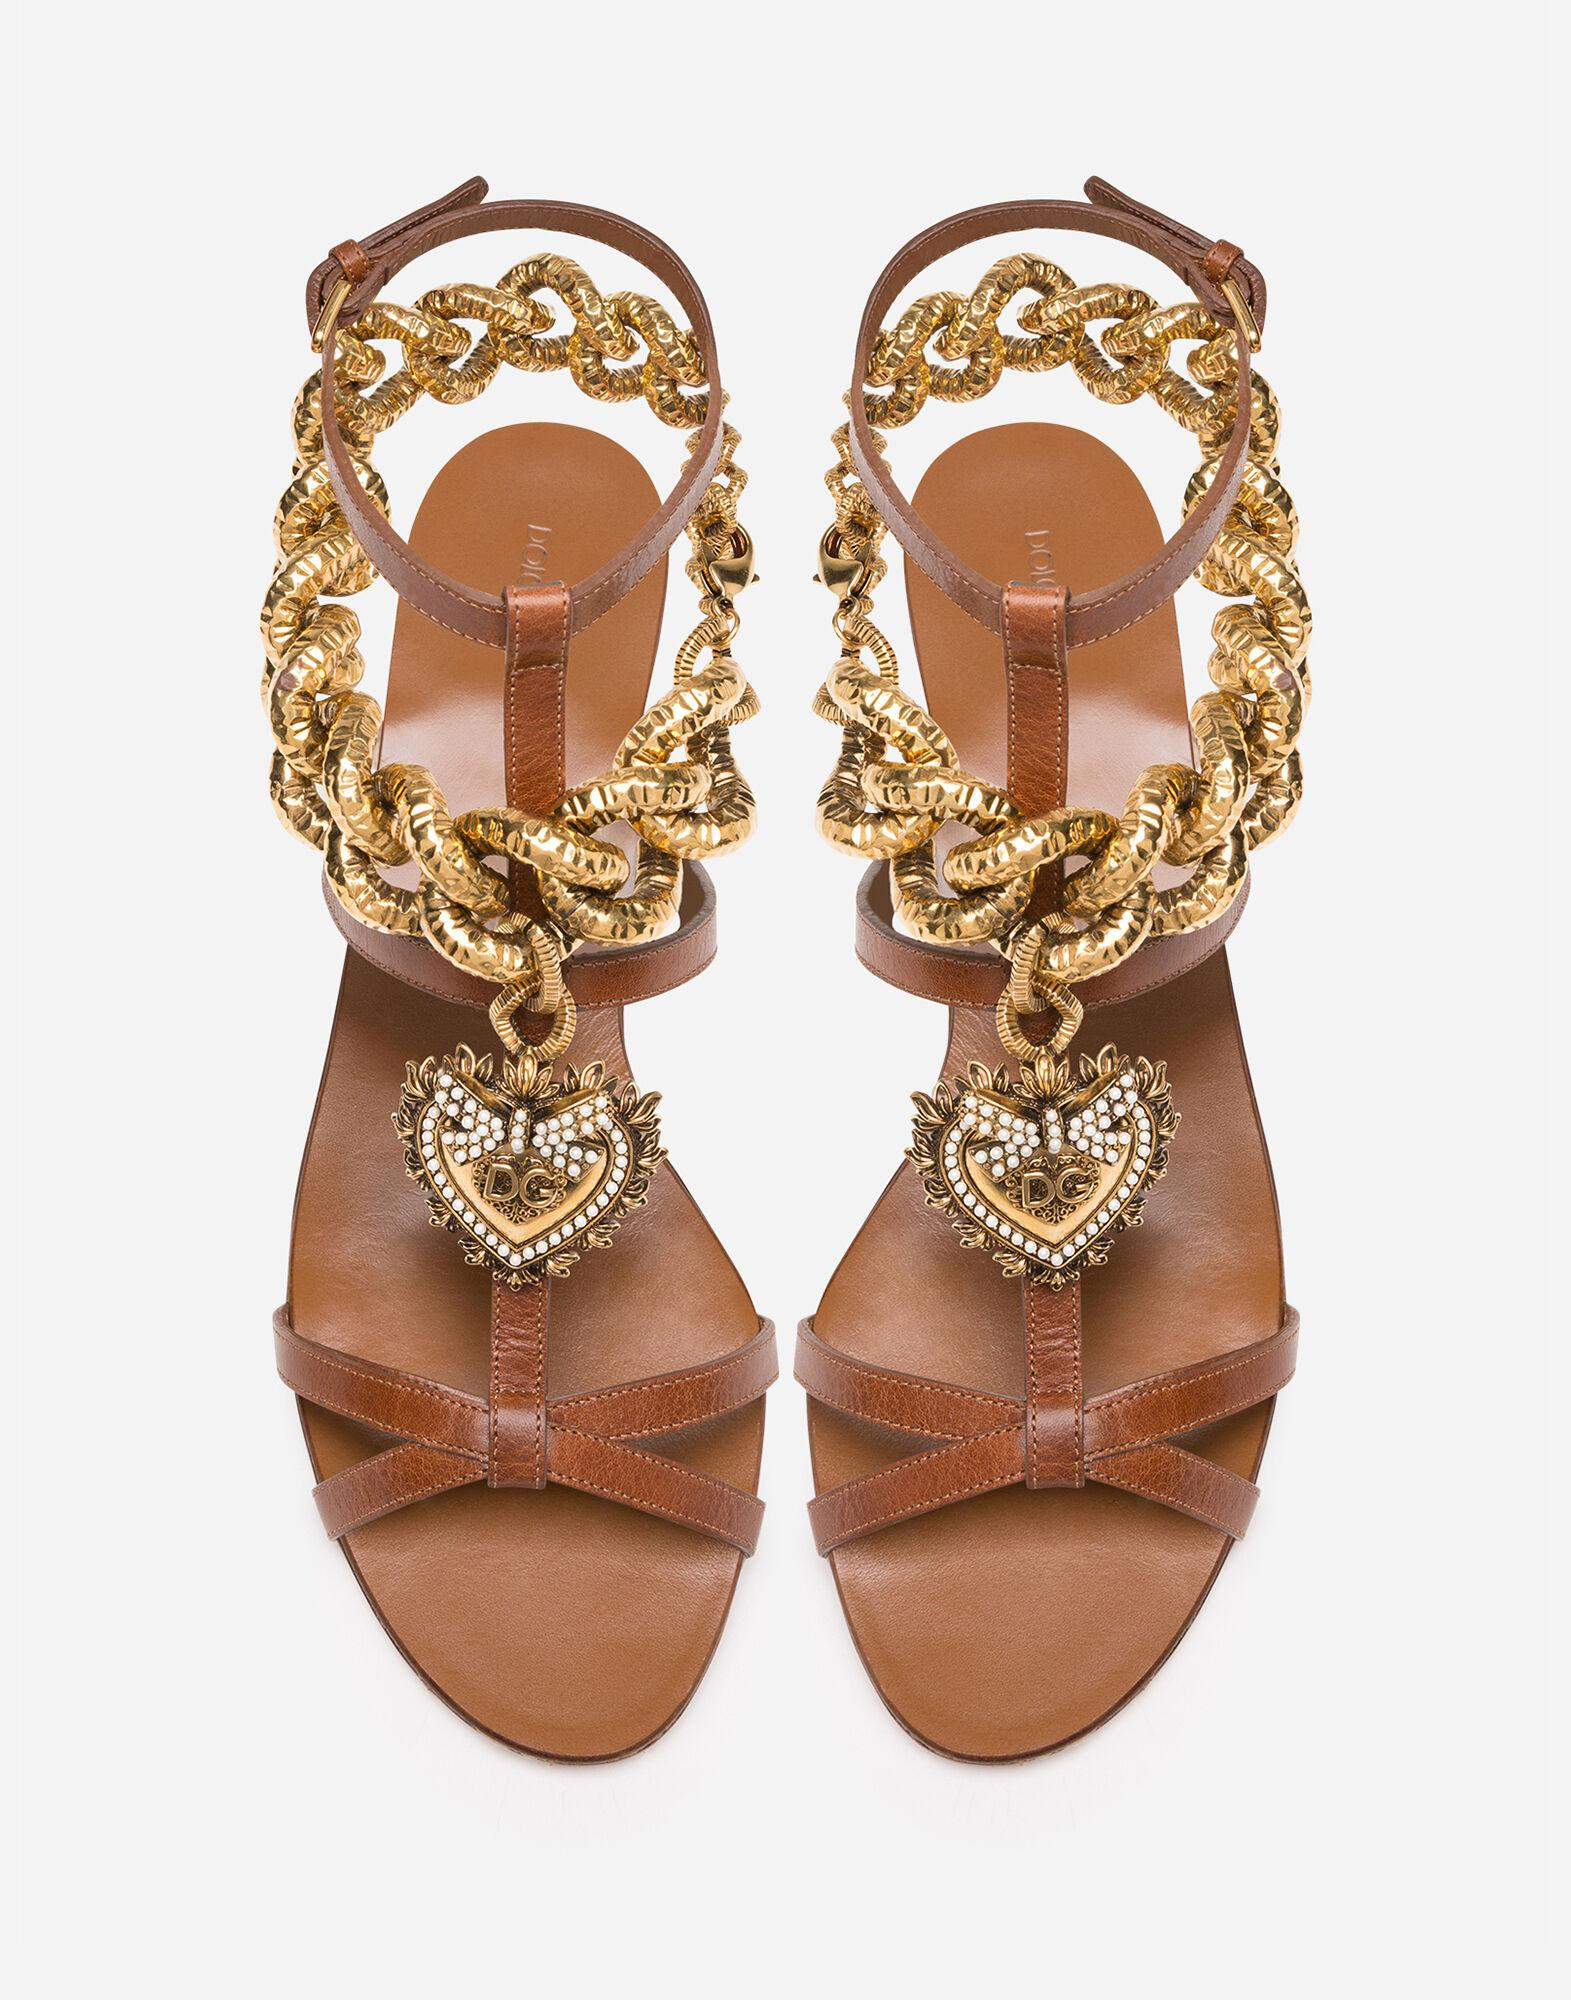 Devotion sandals in polished cowhide 2